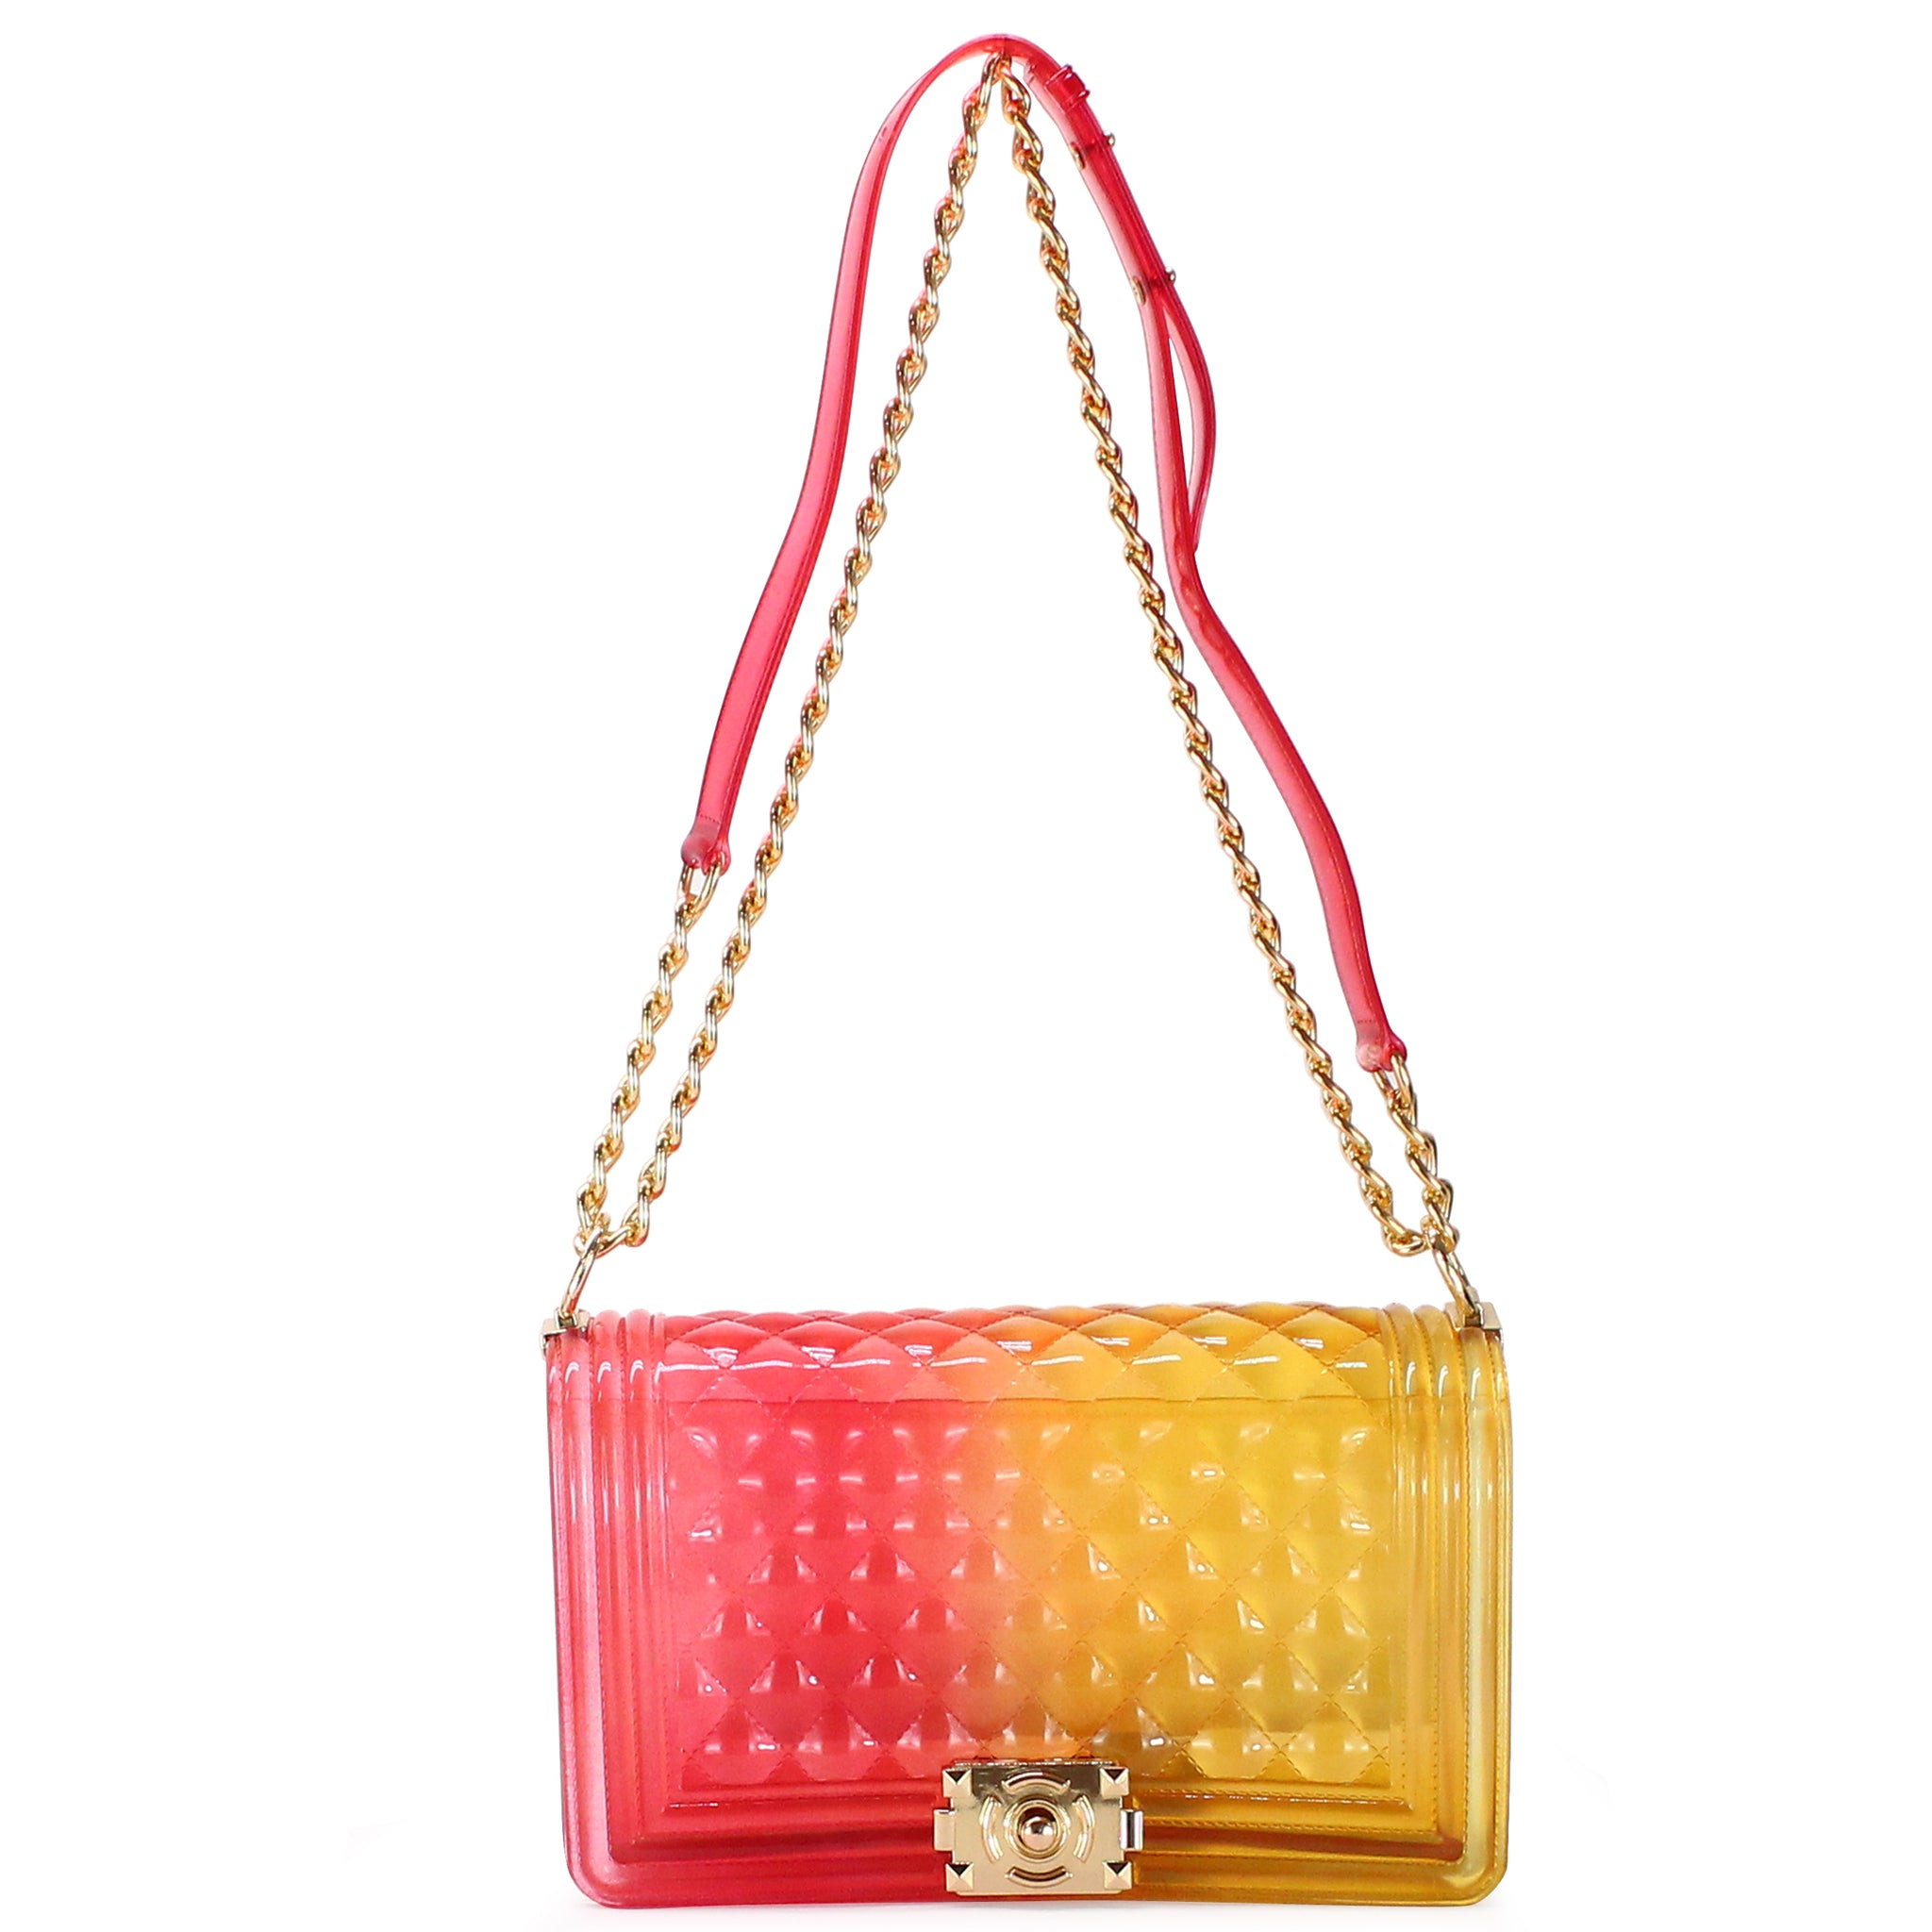 TWO-TONED TRANSPARENT JELLY QUILTED SHOULDER BAG - Jenuine Handbags